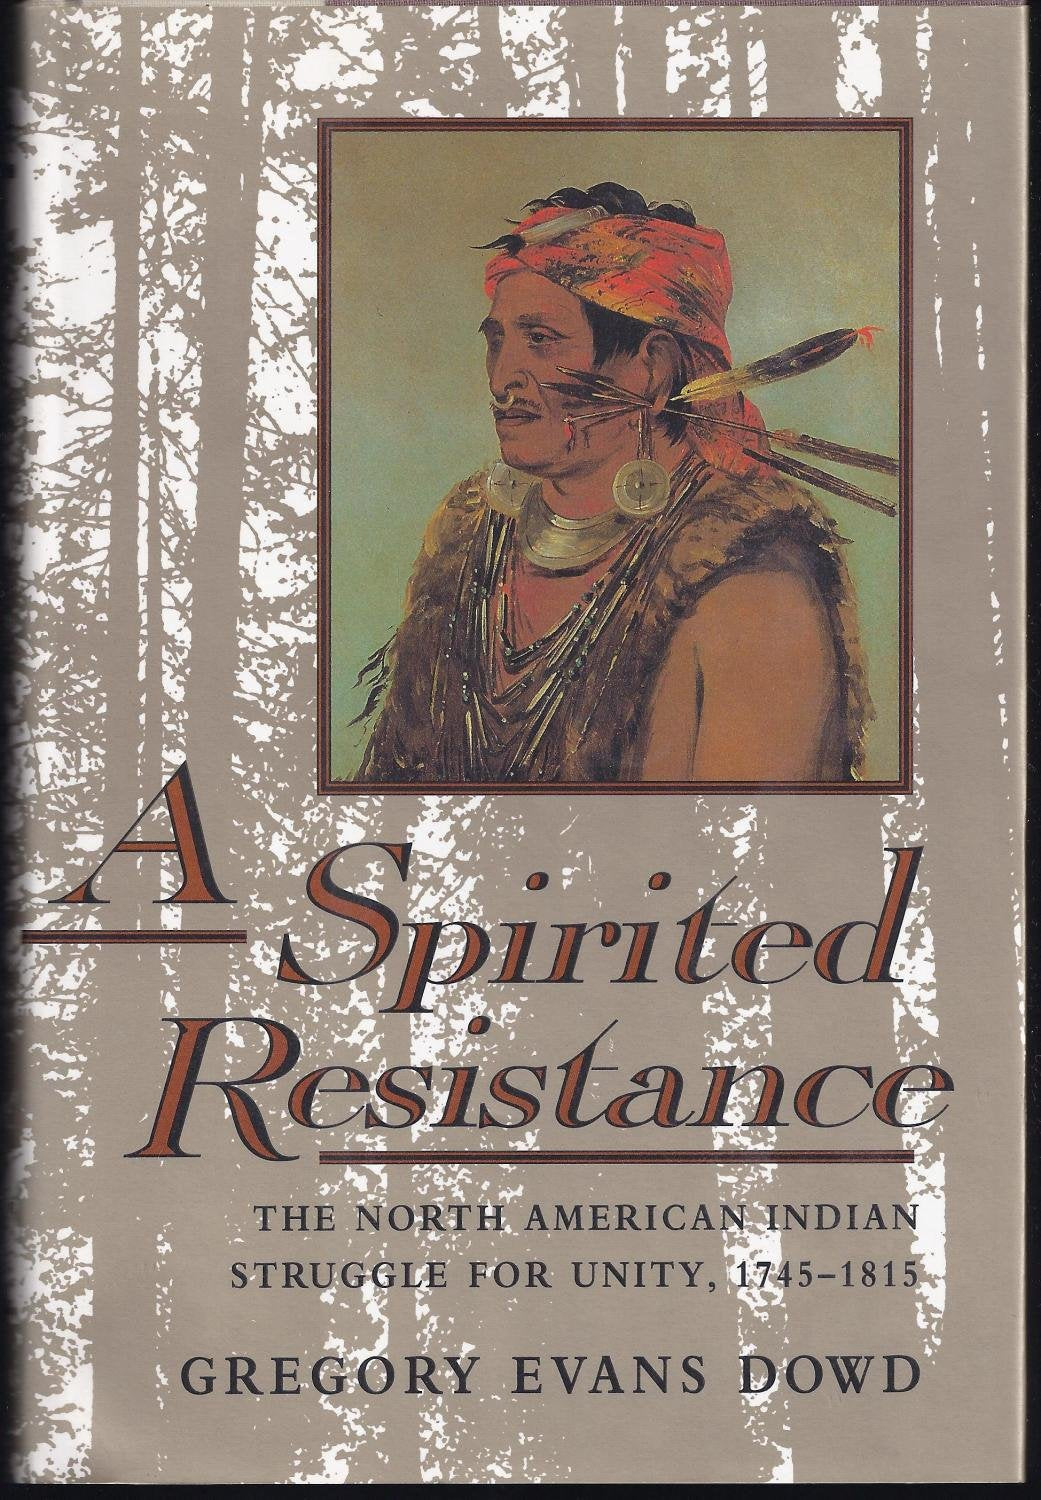 A Spirited Resistance: The North American Indian Struggle for Unity, 1745–1815